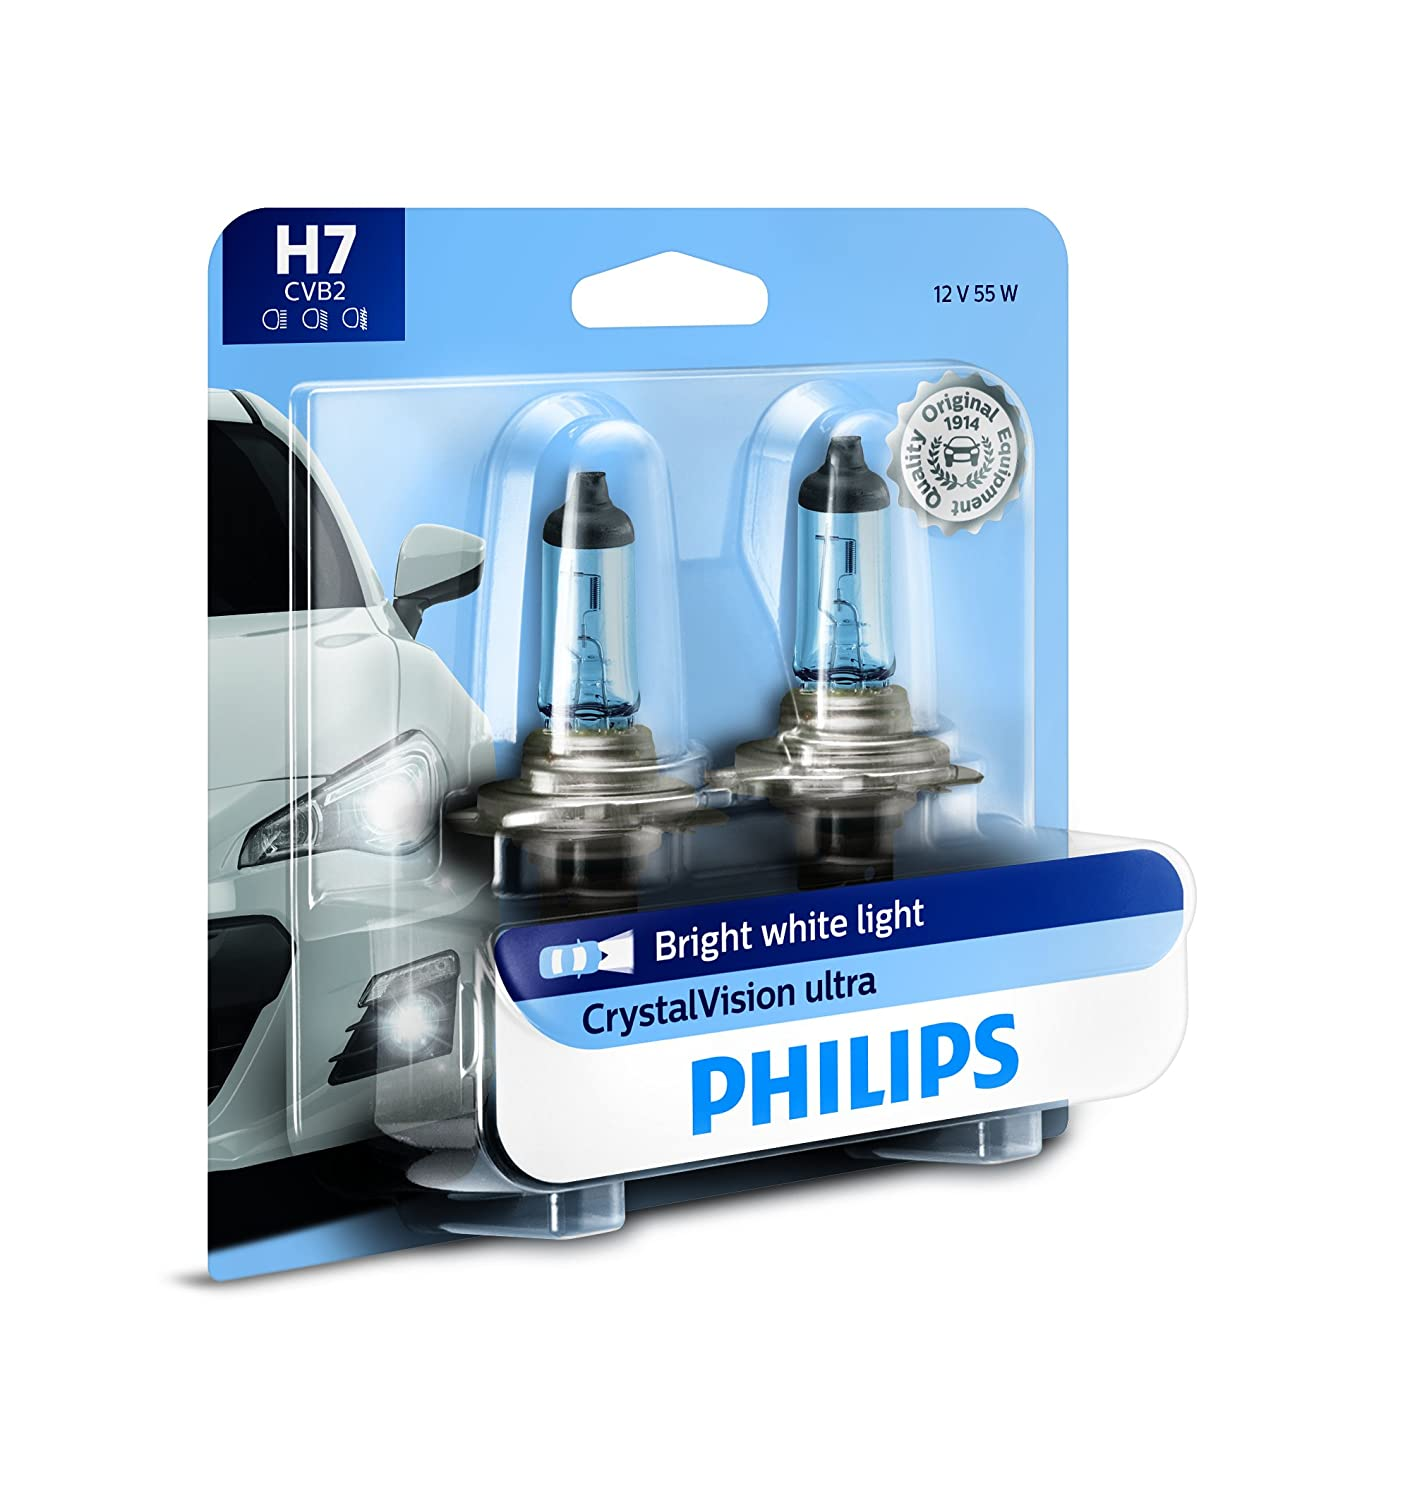 Philips H7 Vision Upgrade Headlight Bulb With Up To 30 Kia Sedona Replacement Further 2002 Parts Diagram More 2 Pack Automotive